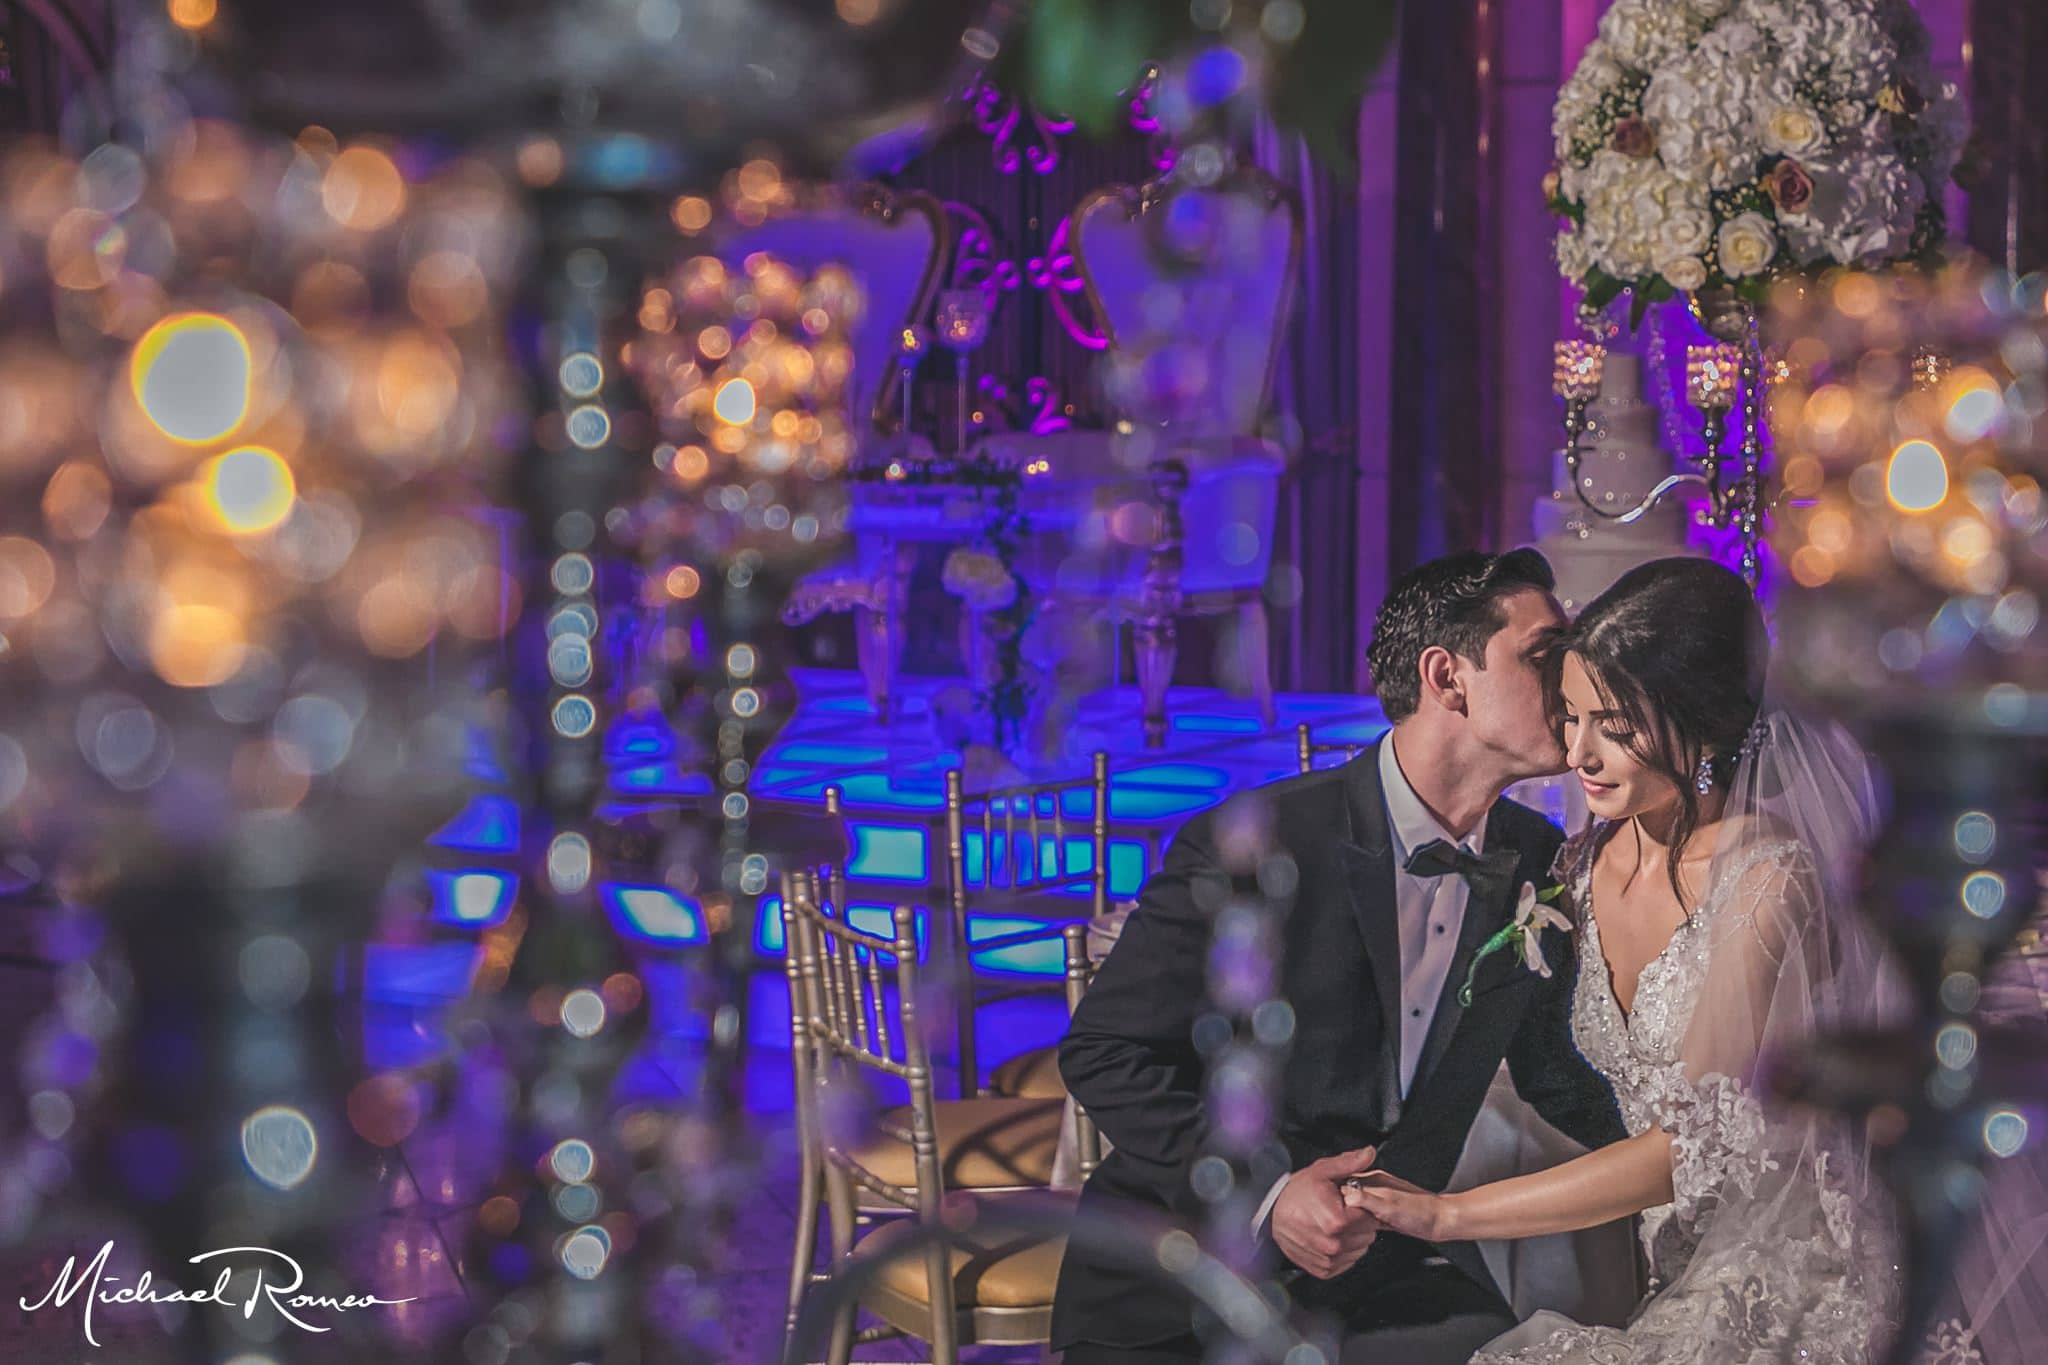 New Jersey Wedding photography cinematography Michael Romeo Creations 1444 - What to Expect When You Plan an Event with One Atlantic Events